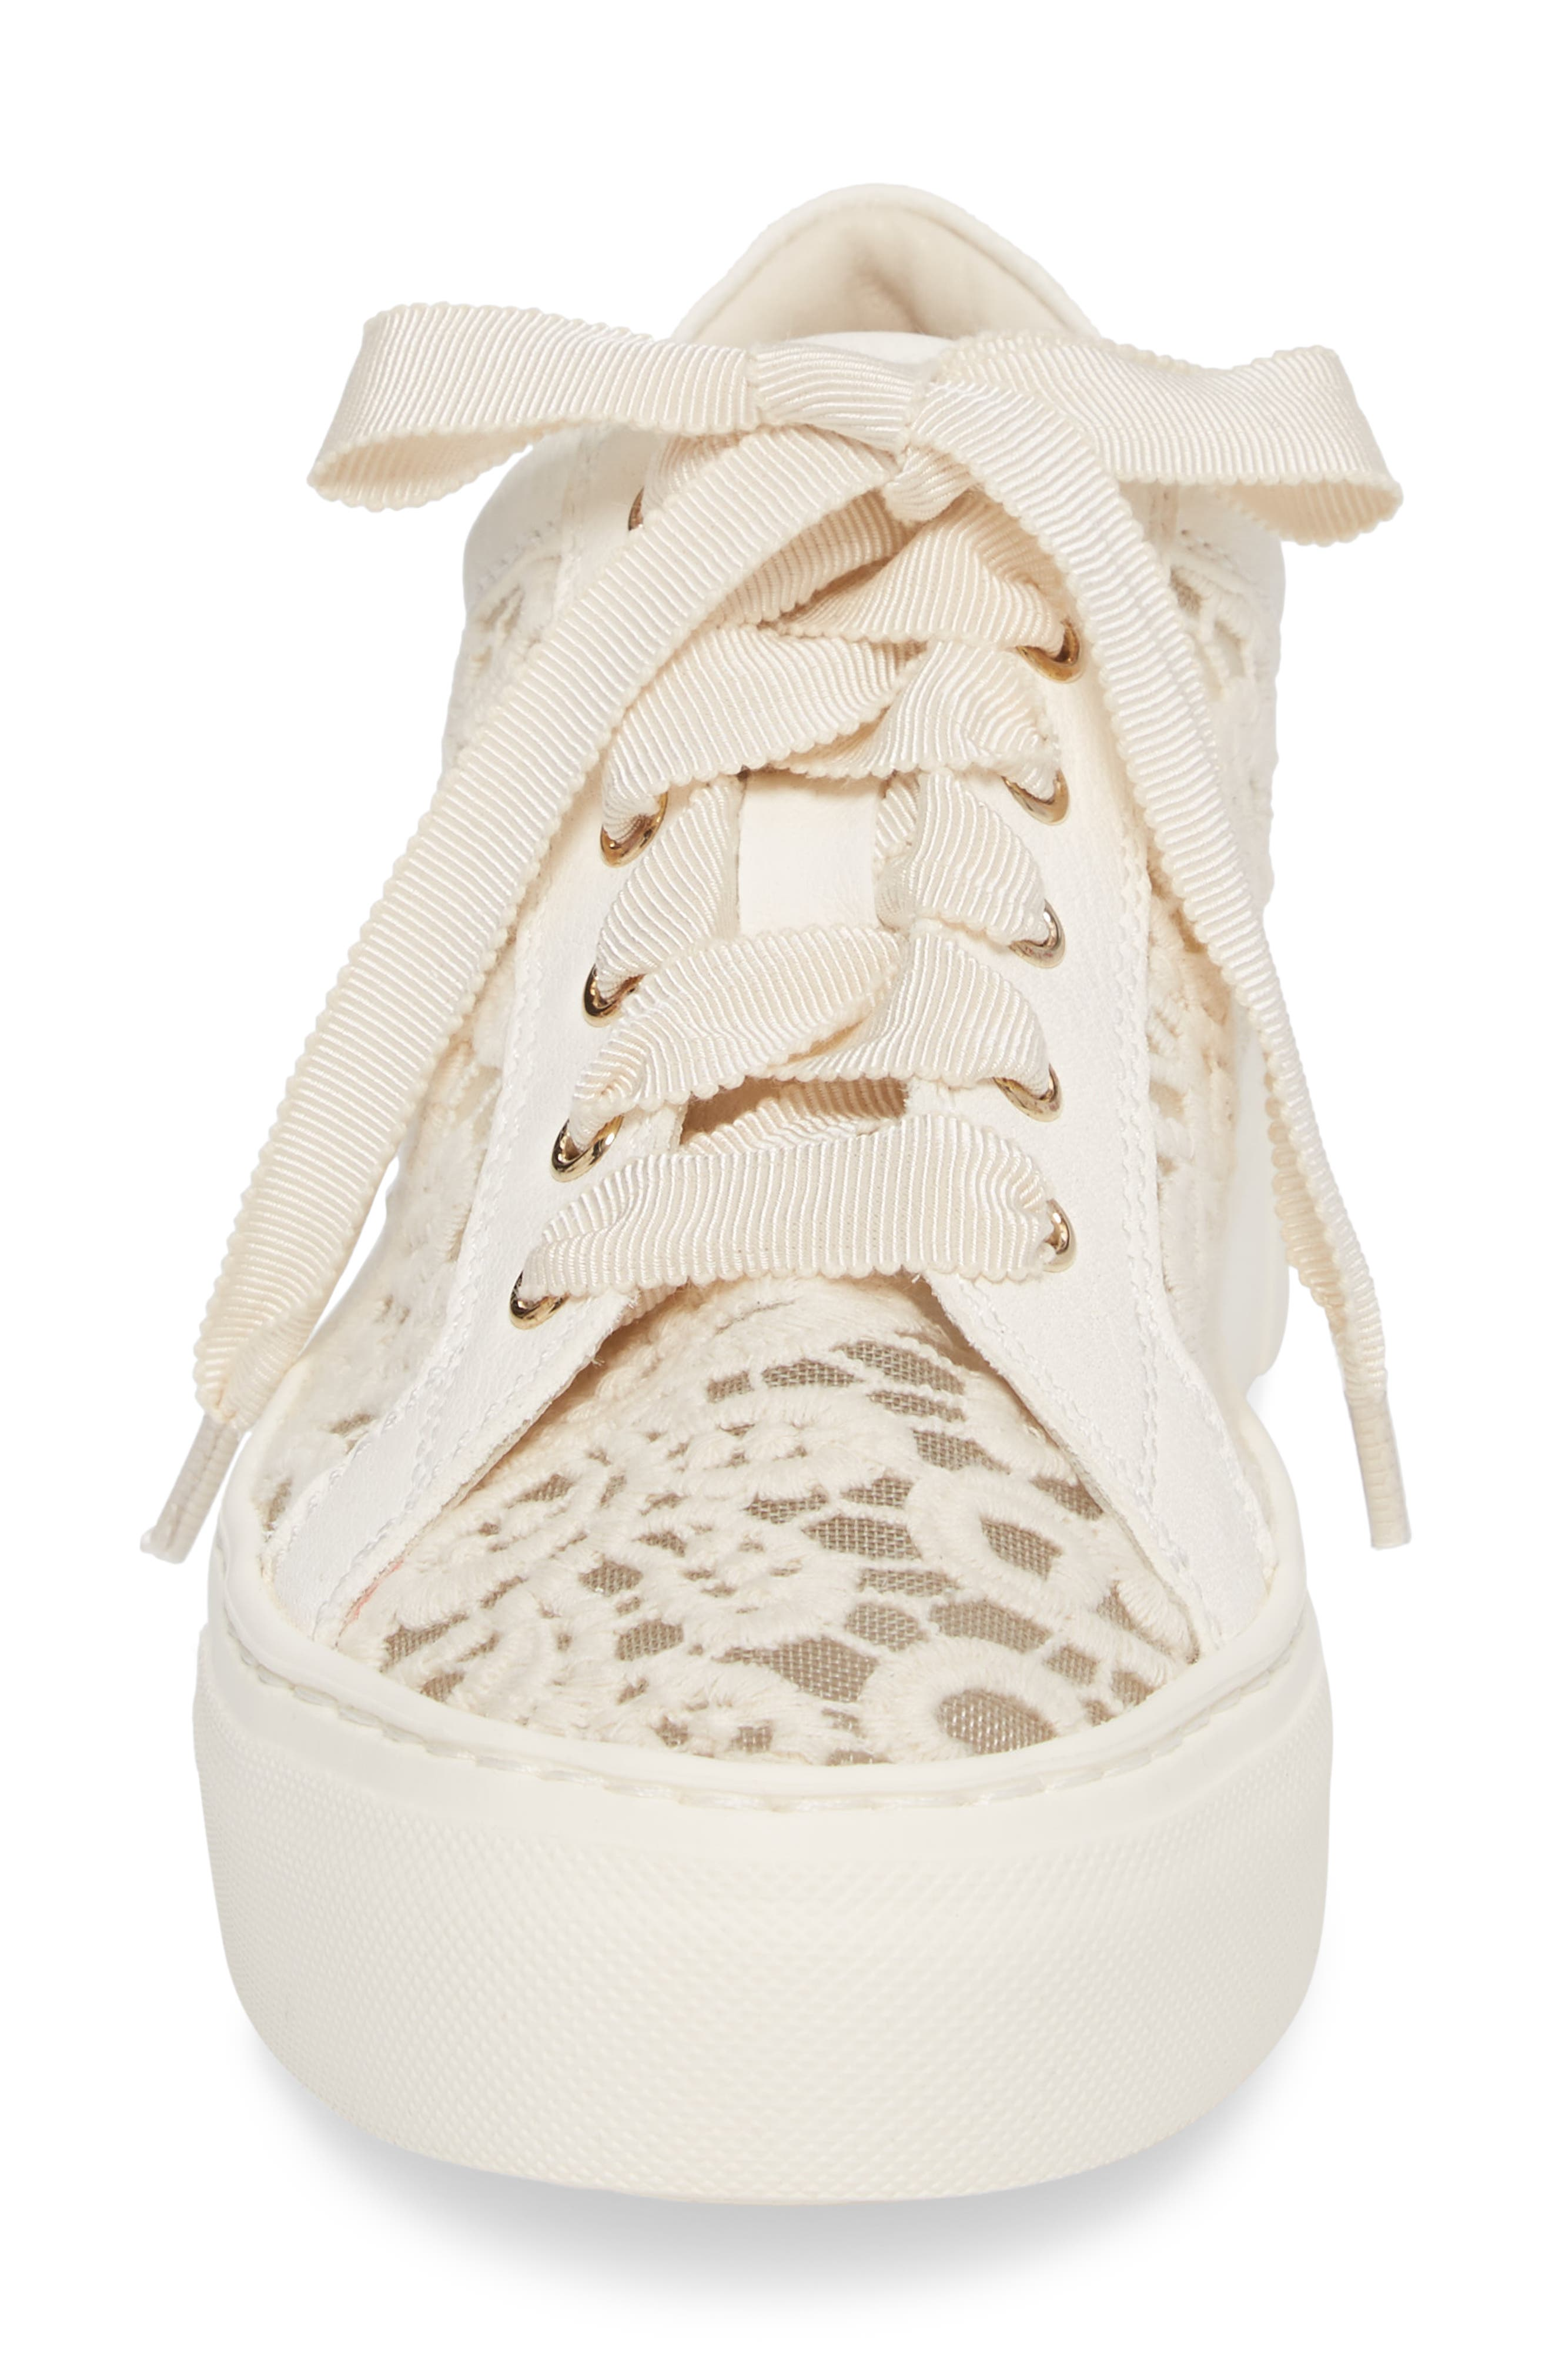 Embroidered Lace Sneaker,                             Alternate thumbnail 4, color,                             OFF WHITE LEATHER